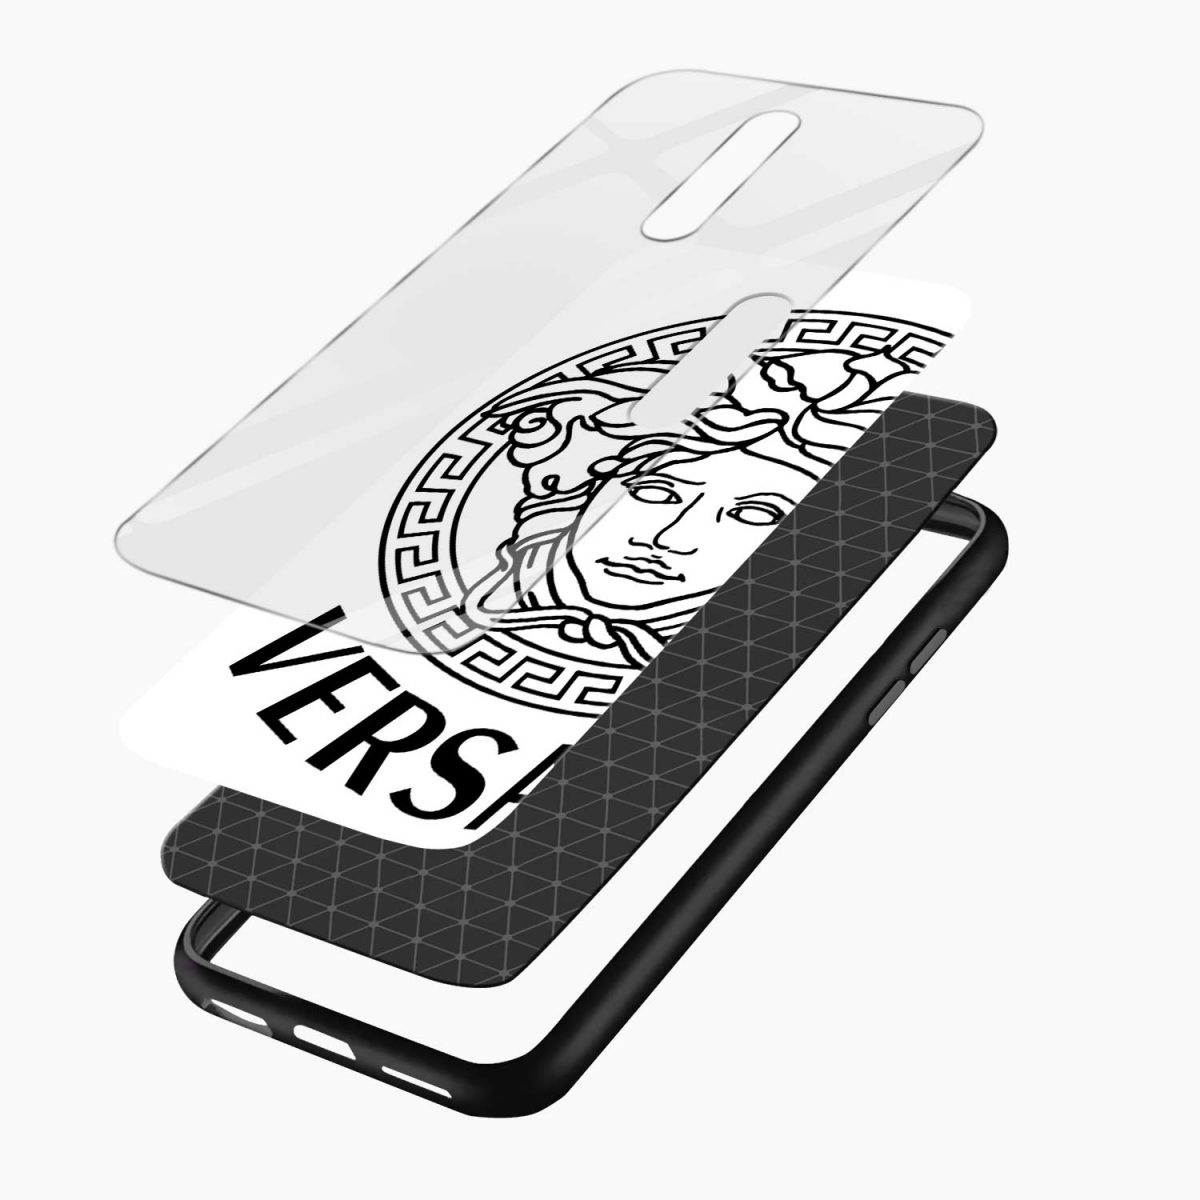 versace black white layers view oneplus 7 pro back cover